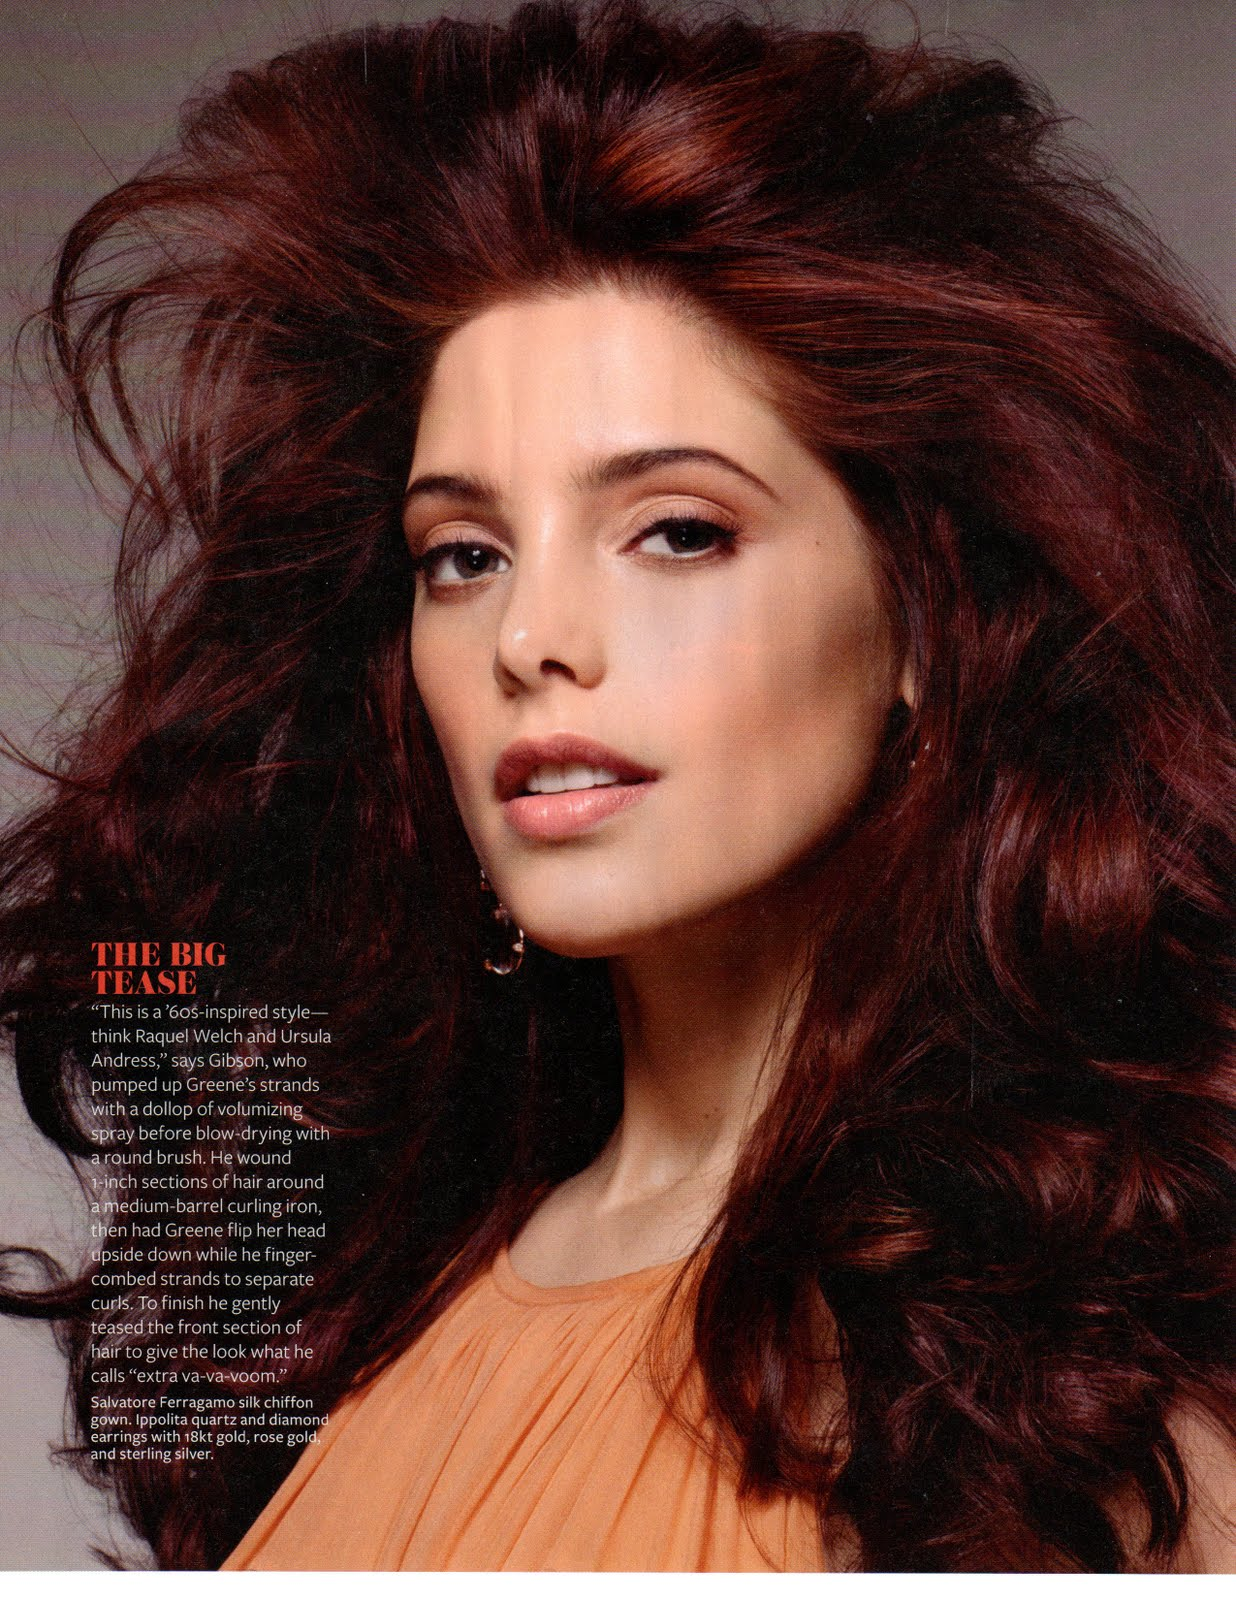 http://3.bp.blogspot.com/--RILRxV26eY/TcA2l34Z_hI/AAAAAAAAHUc/P8LY50UWVQg/s1600/Ashley_Greene_InStyle003.jpg